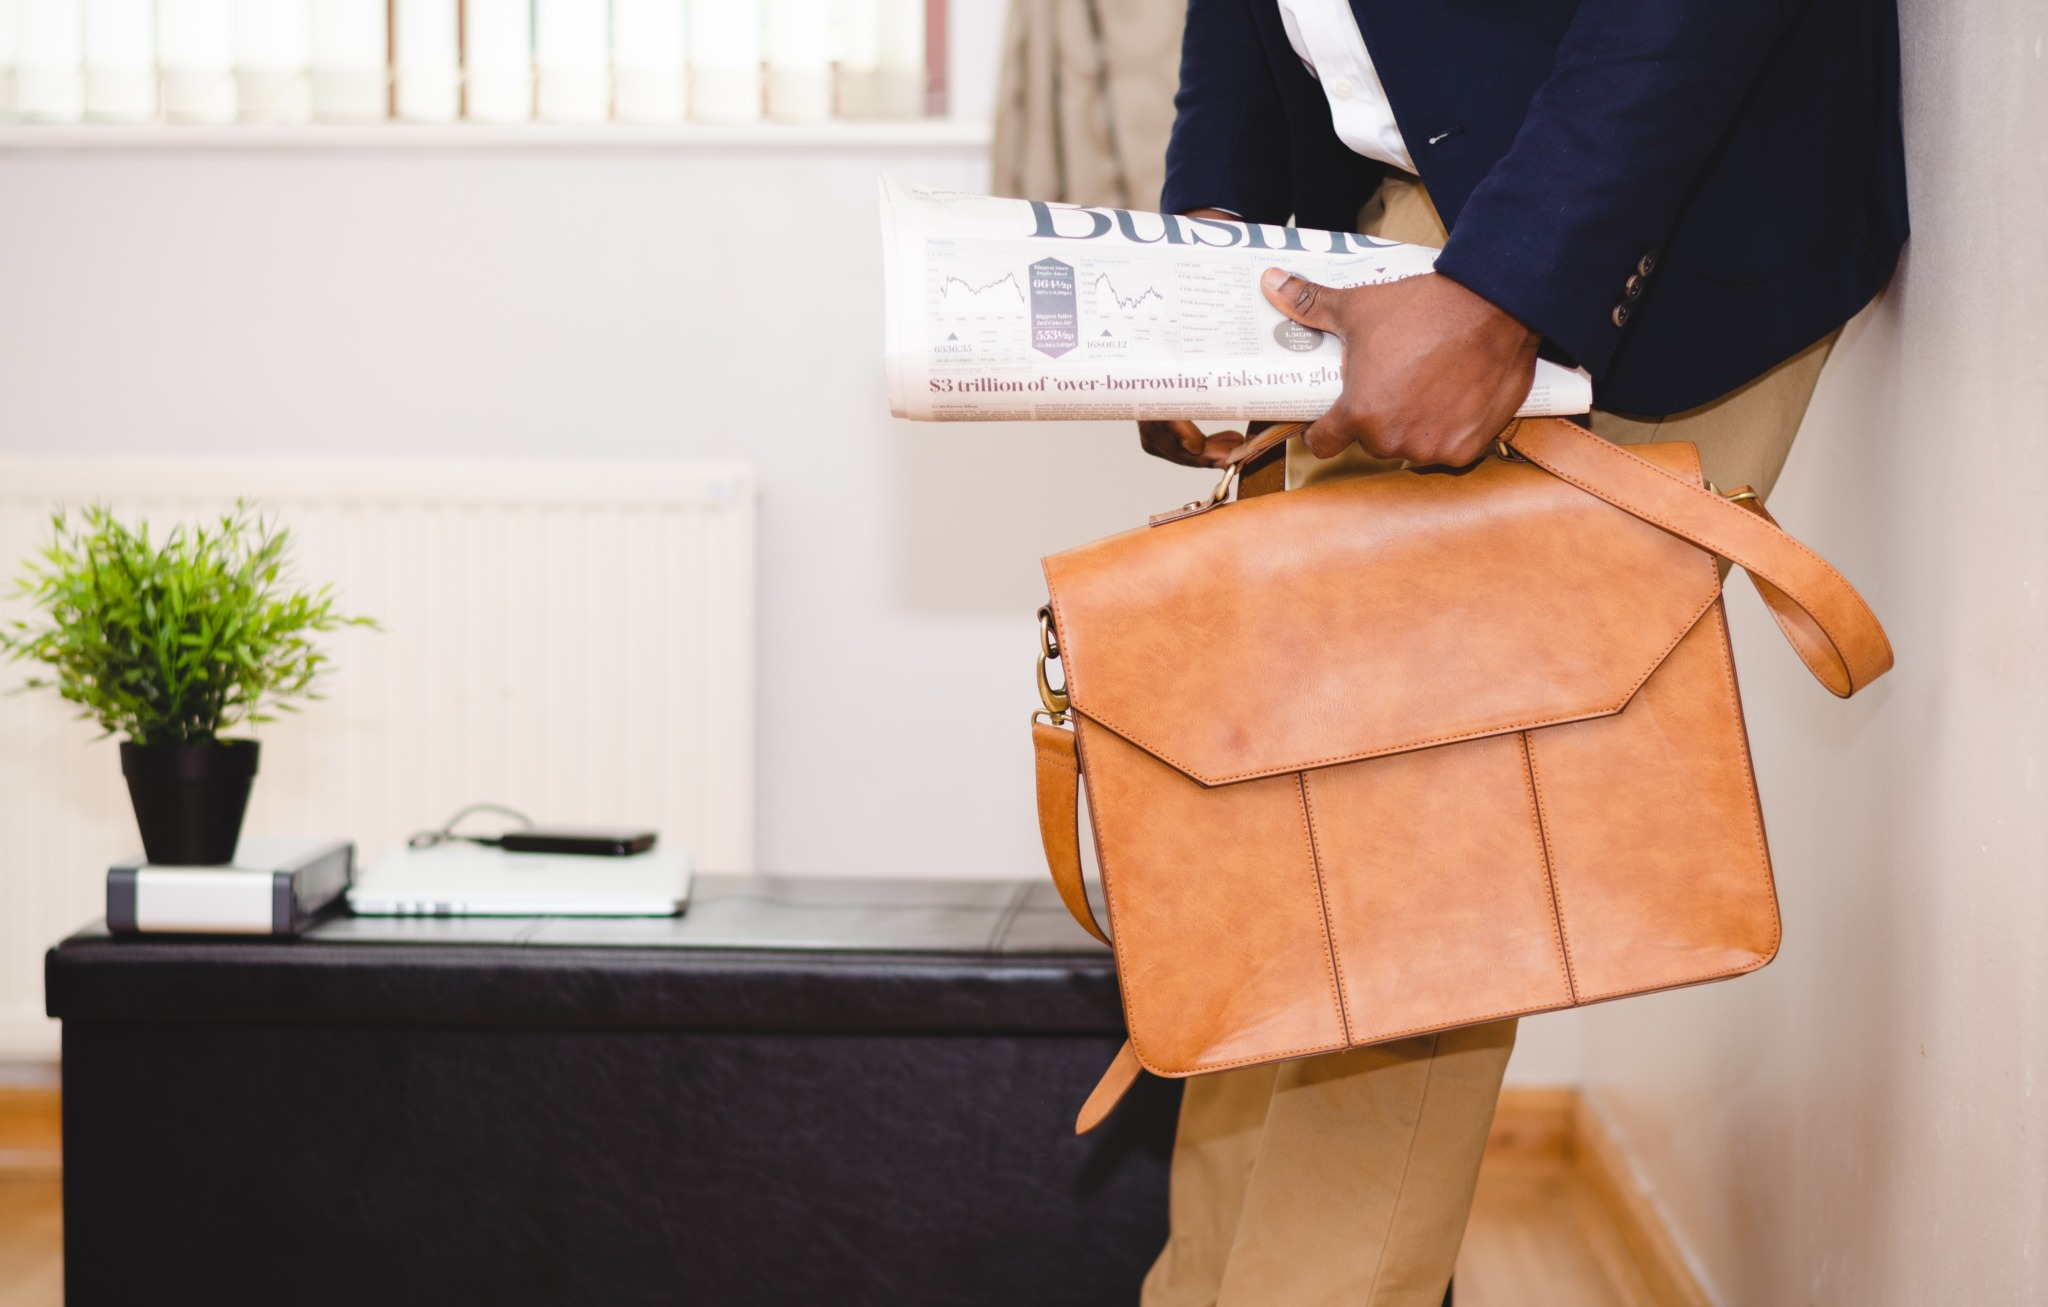 Man holding brown leather bag